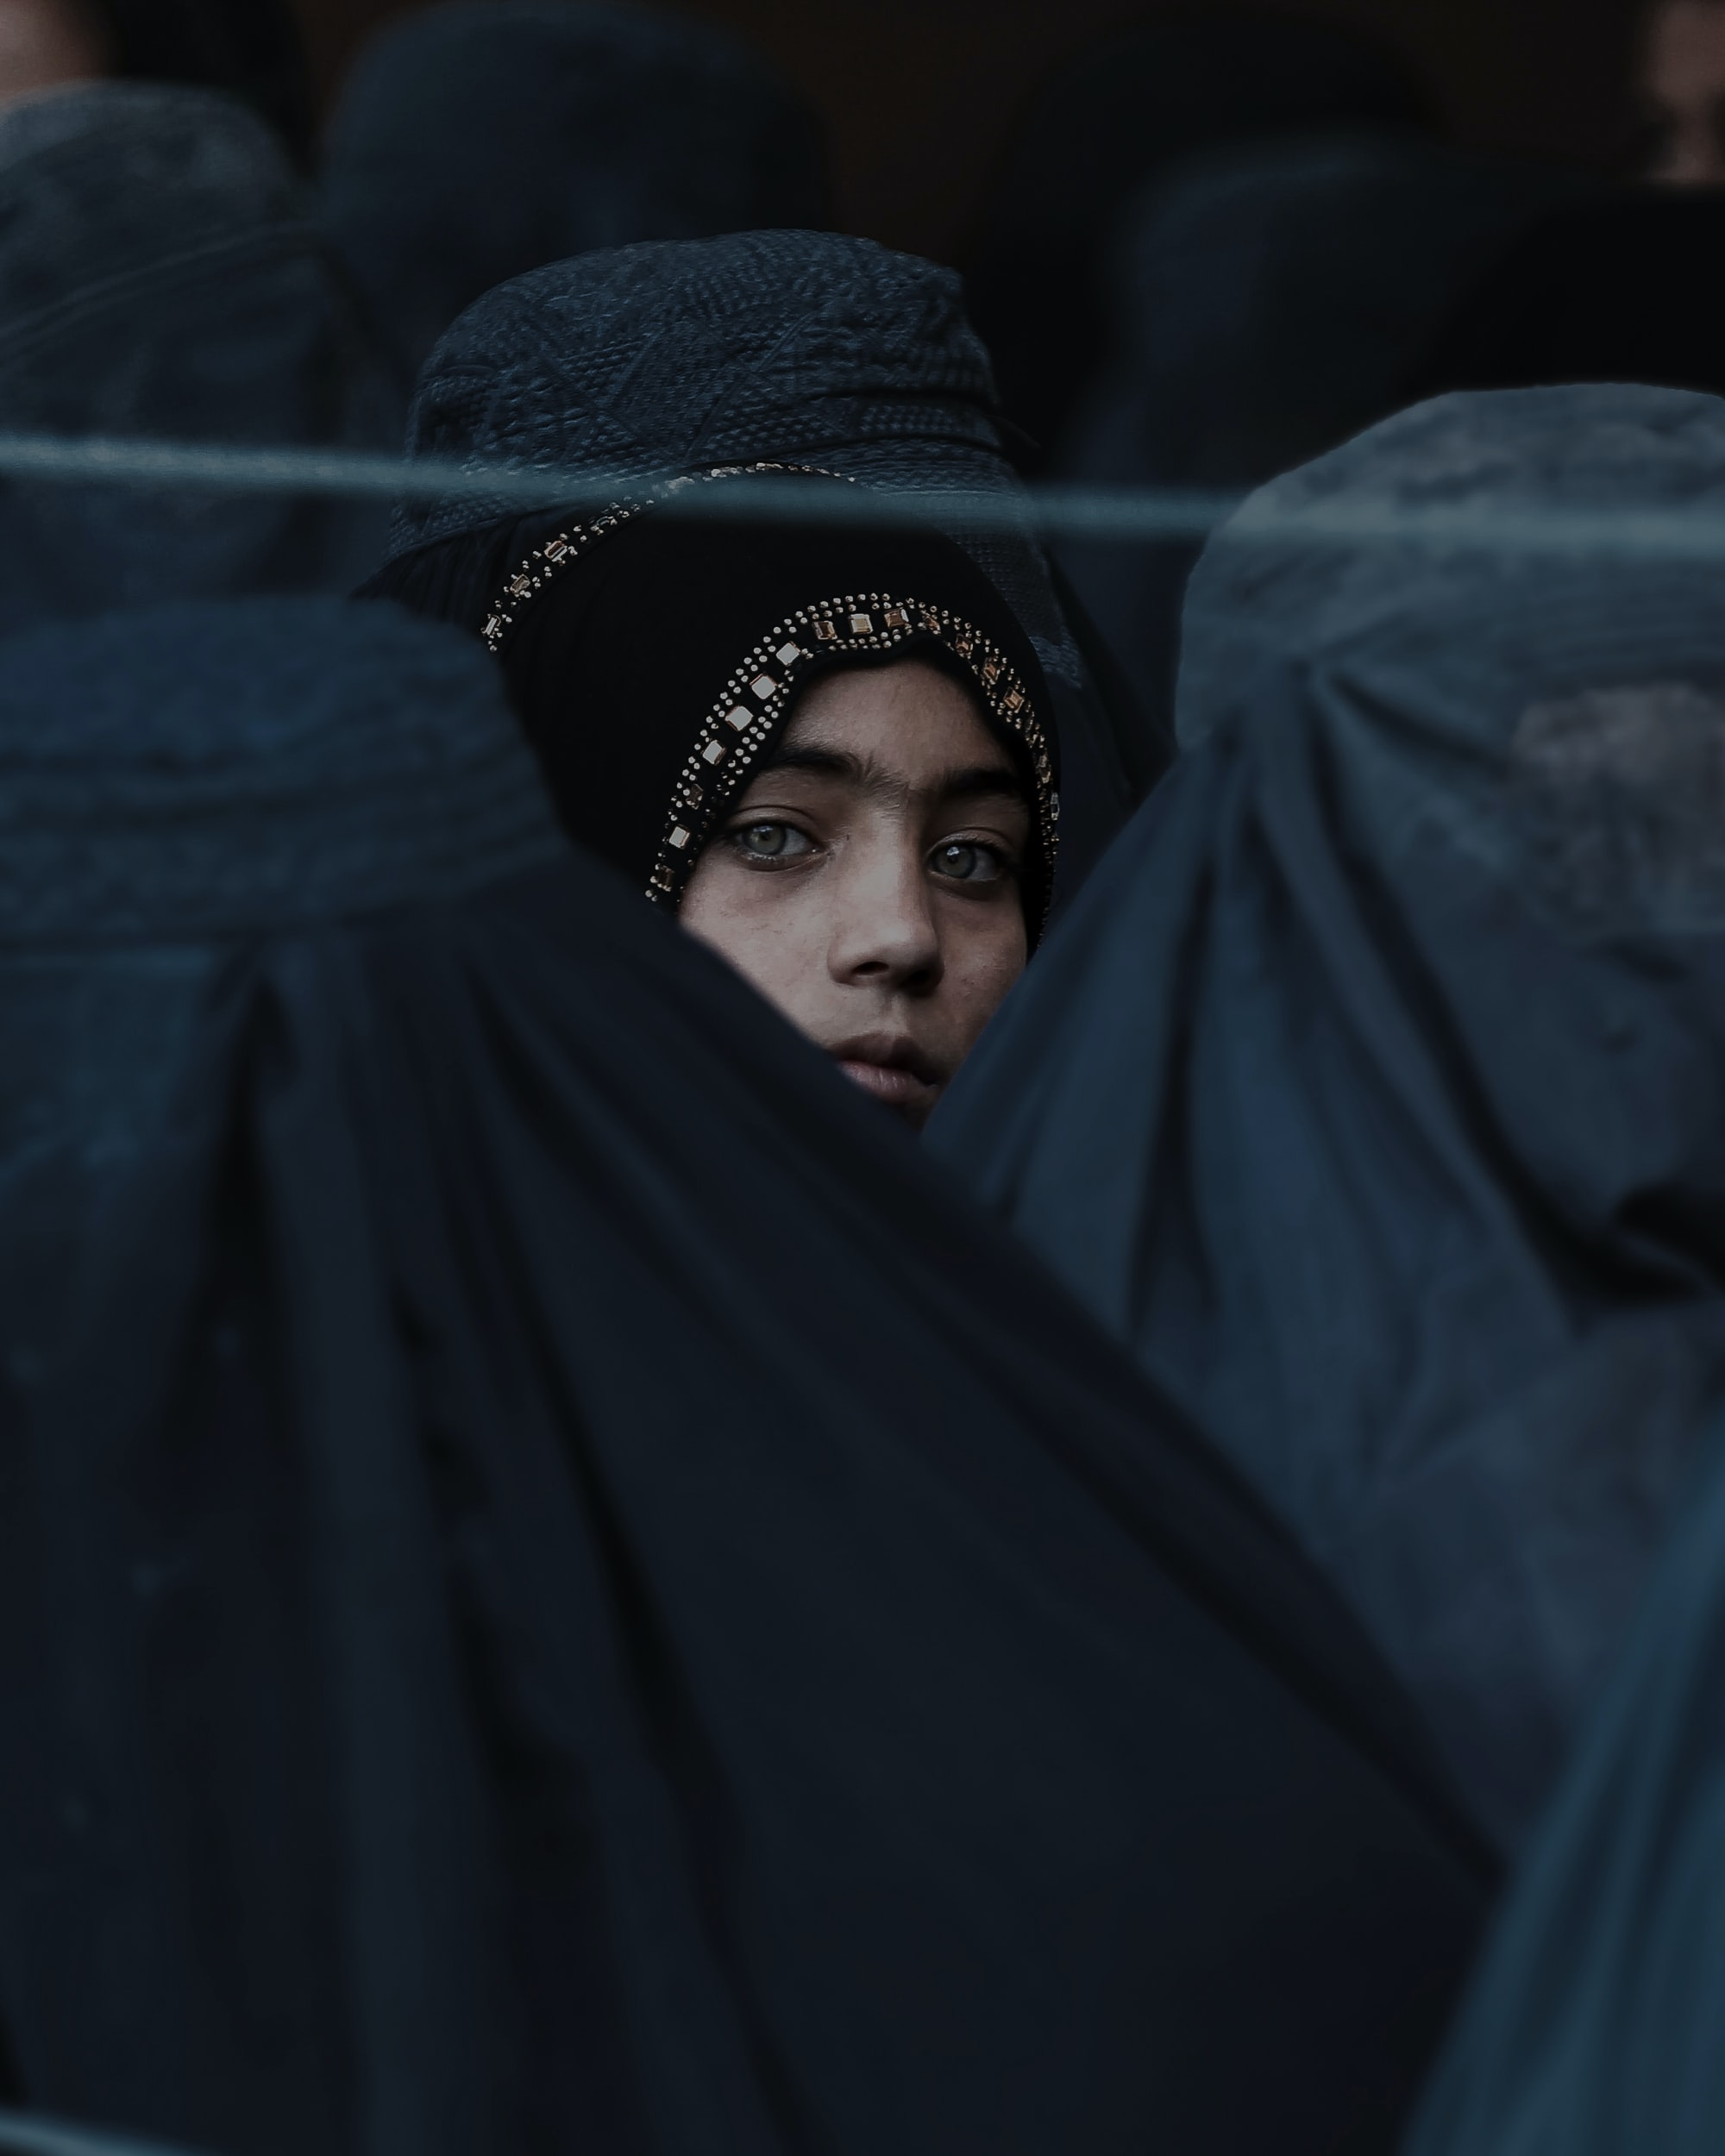 A Girl Looks on Among Afghan Women Lining Up To Receive Relief Assistance, During The Holy Month of Ramadan in #Jalalabad, #Afghanistan.